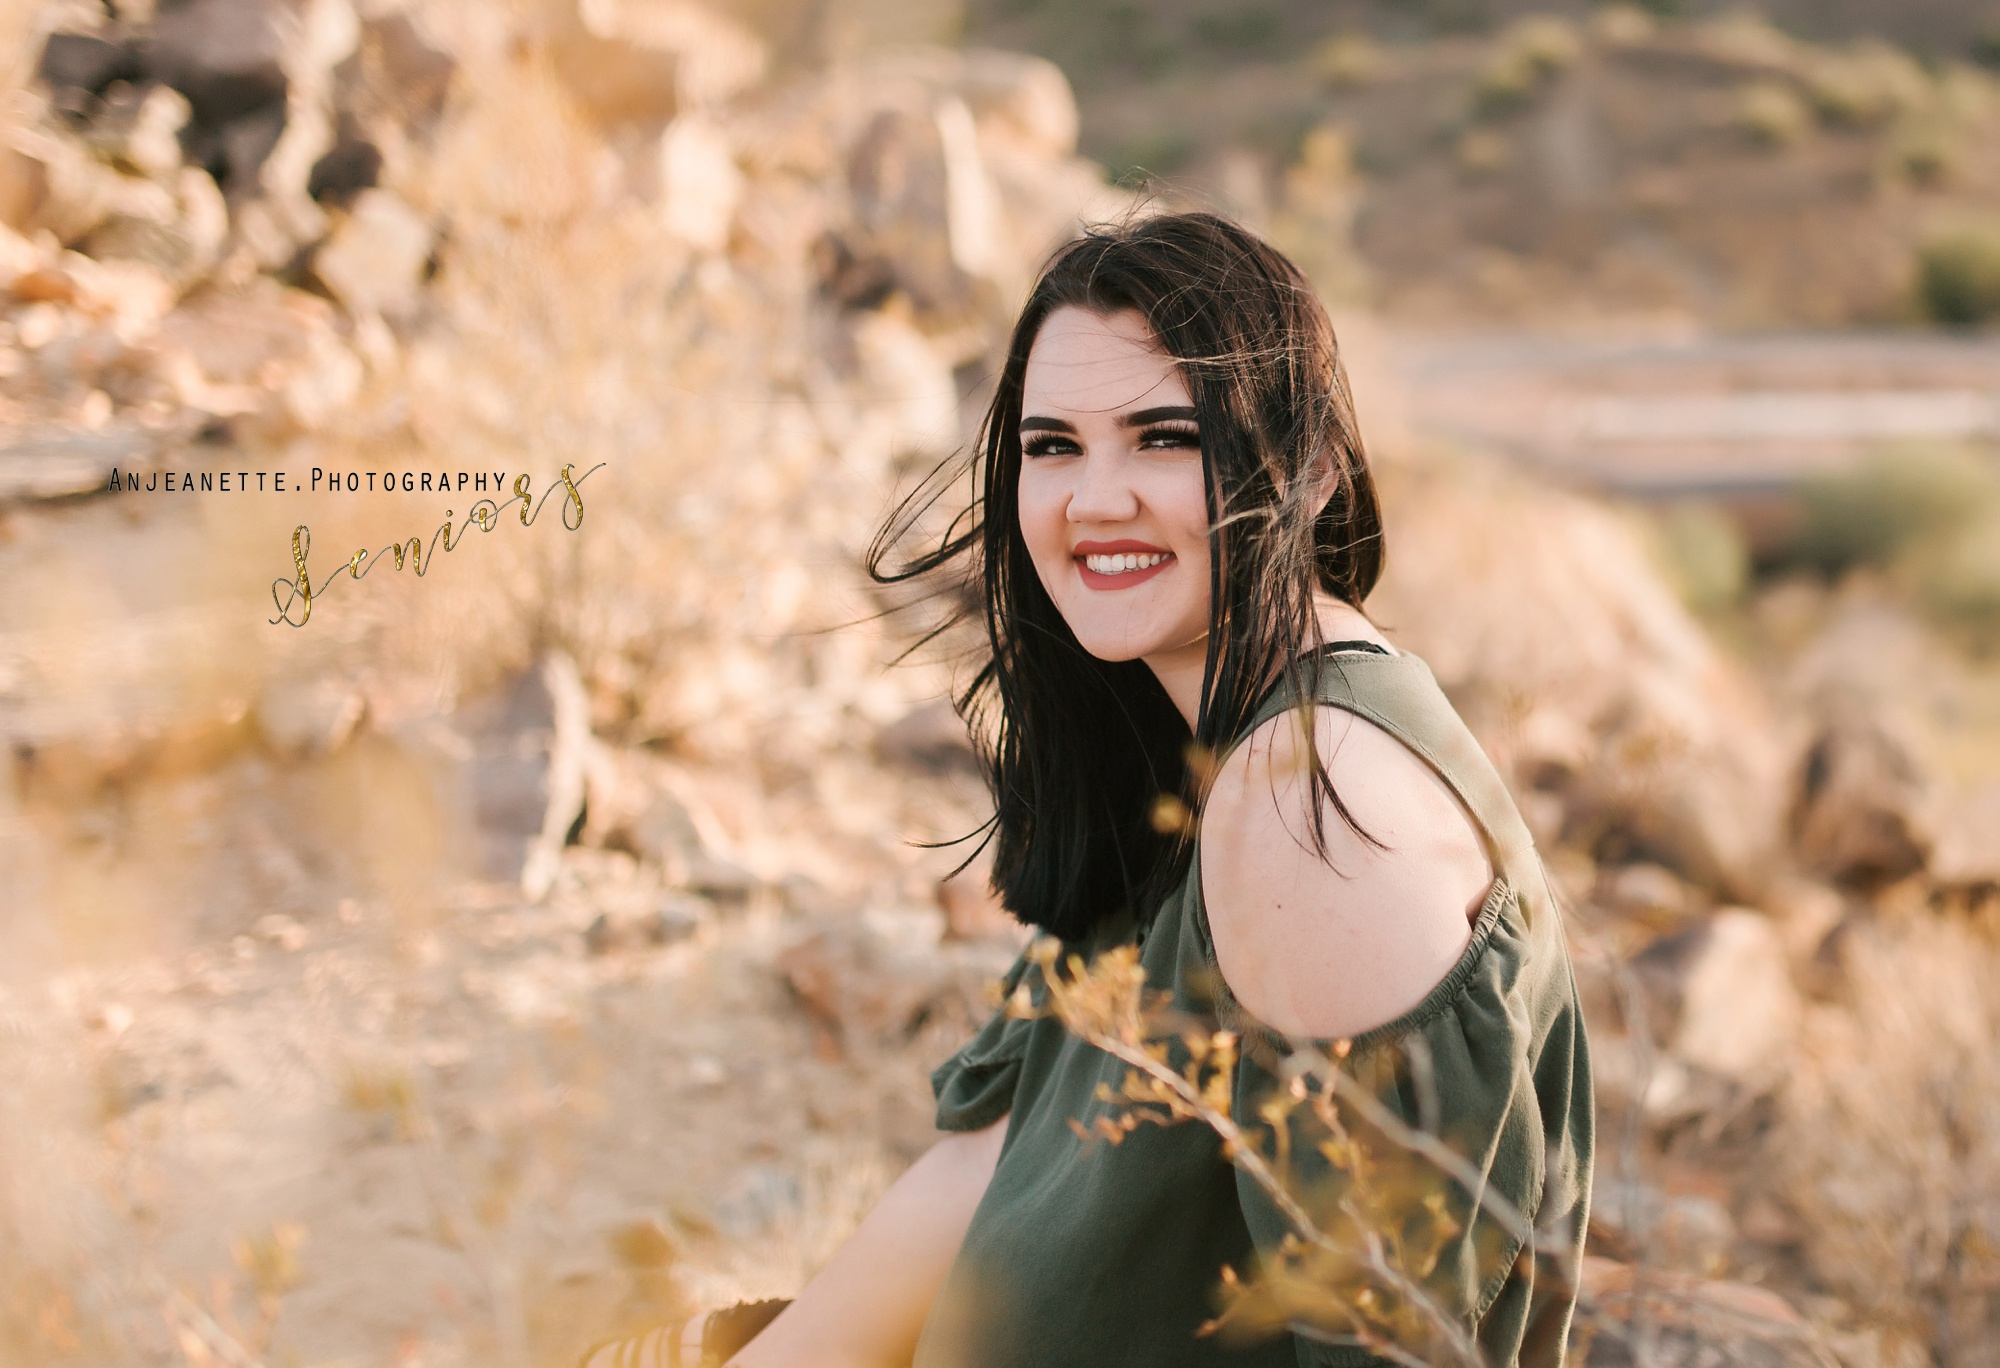 Peoria Az senior grad pictures by Glendale Az high school portrait photographer Anjeanette Photography Phoenix